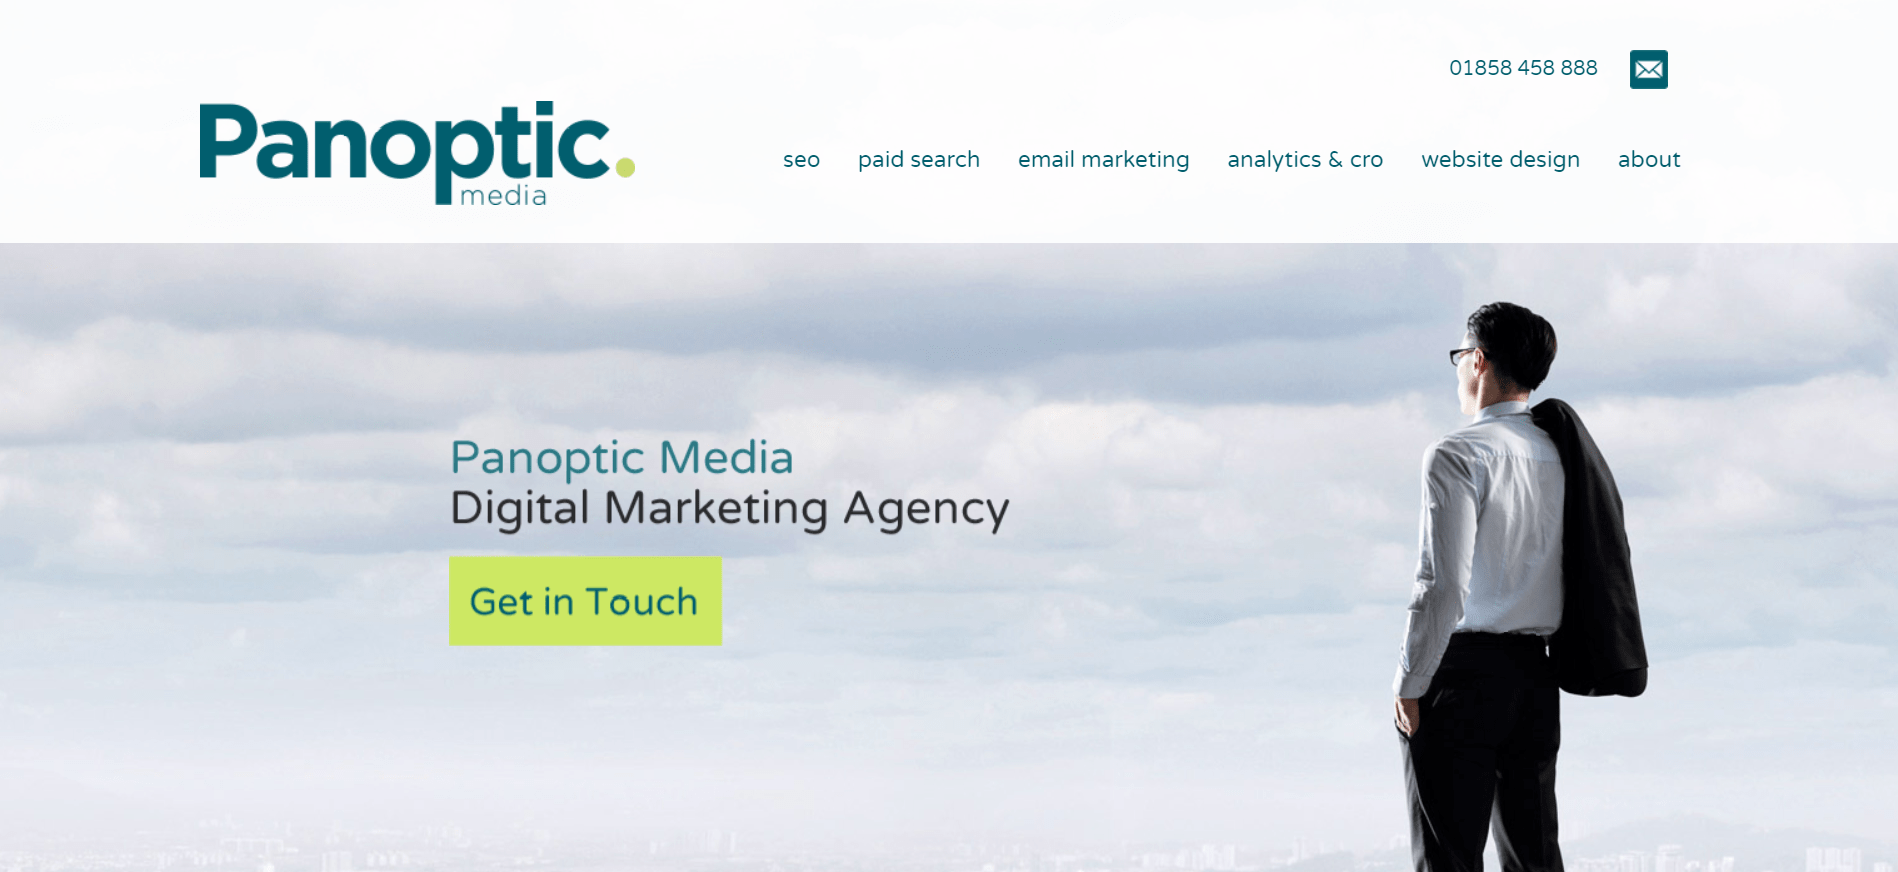 Panoptic Media Overview- PPC Management company